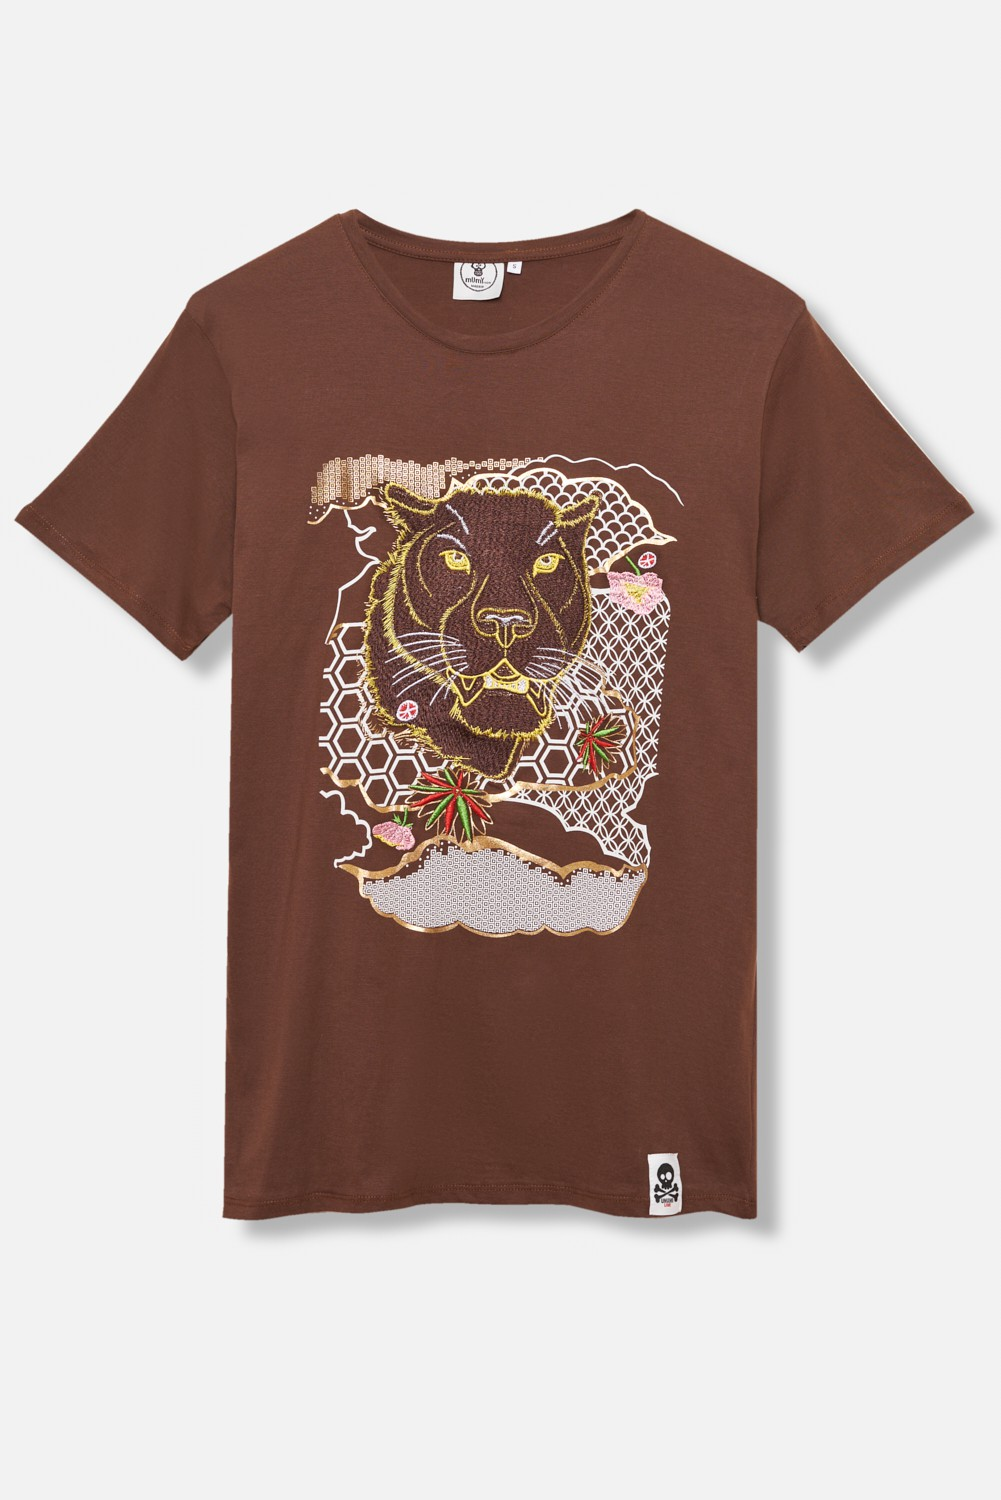 ADULT´S EMBROIDERED T-SHIRT UMAMI LINE BROWN PANTHER